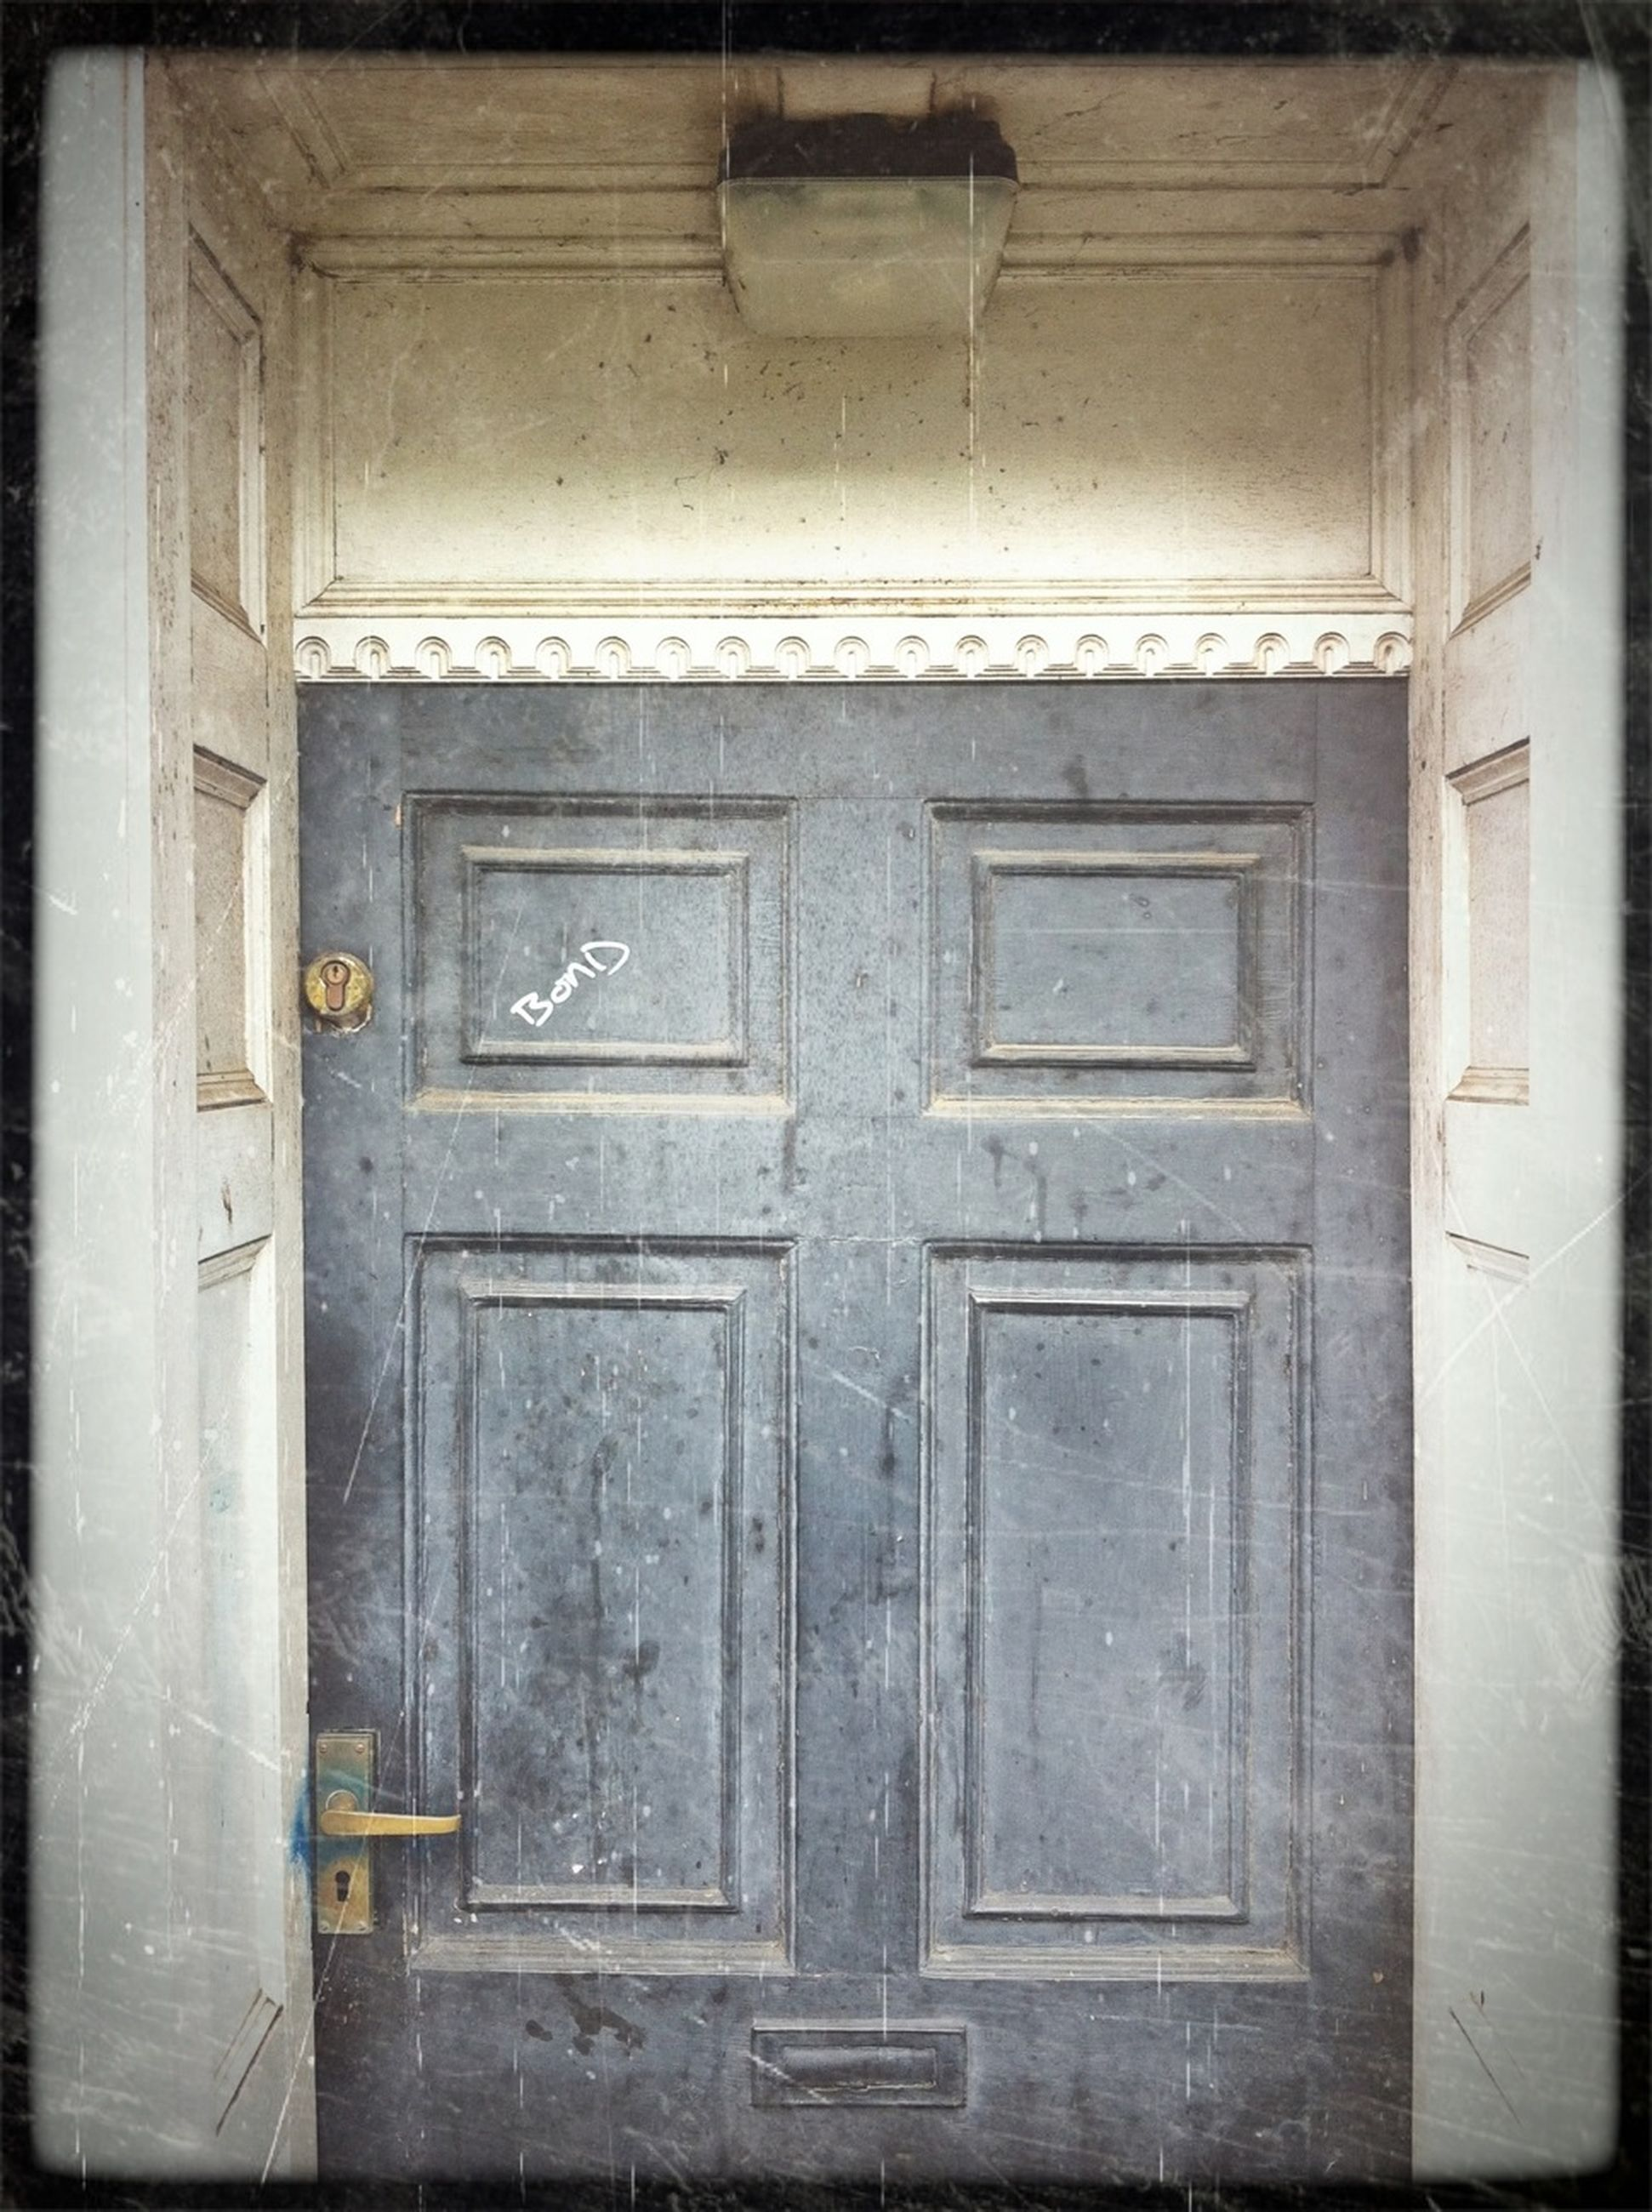 door, closed, built structure, architecture, building exterior, safety, entrance, protection, security, wood - material, transfer print, old, full frame, house, window, backgrounds, auto post production filter, no people, close-up, wooden